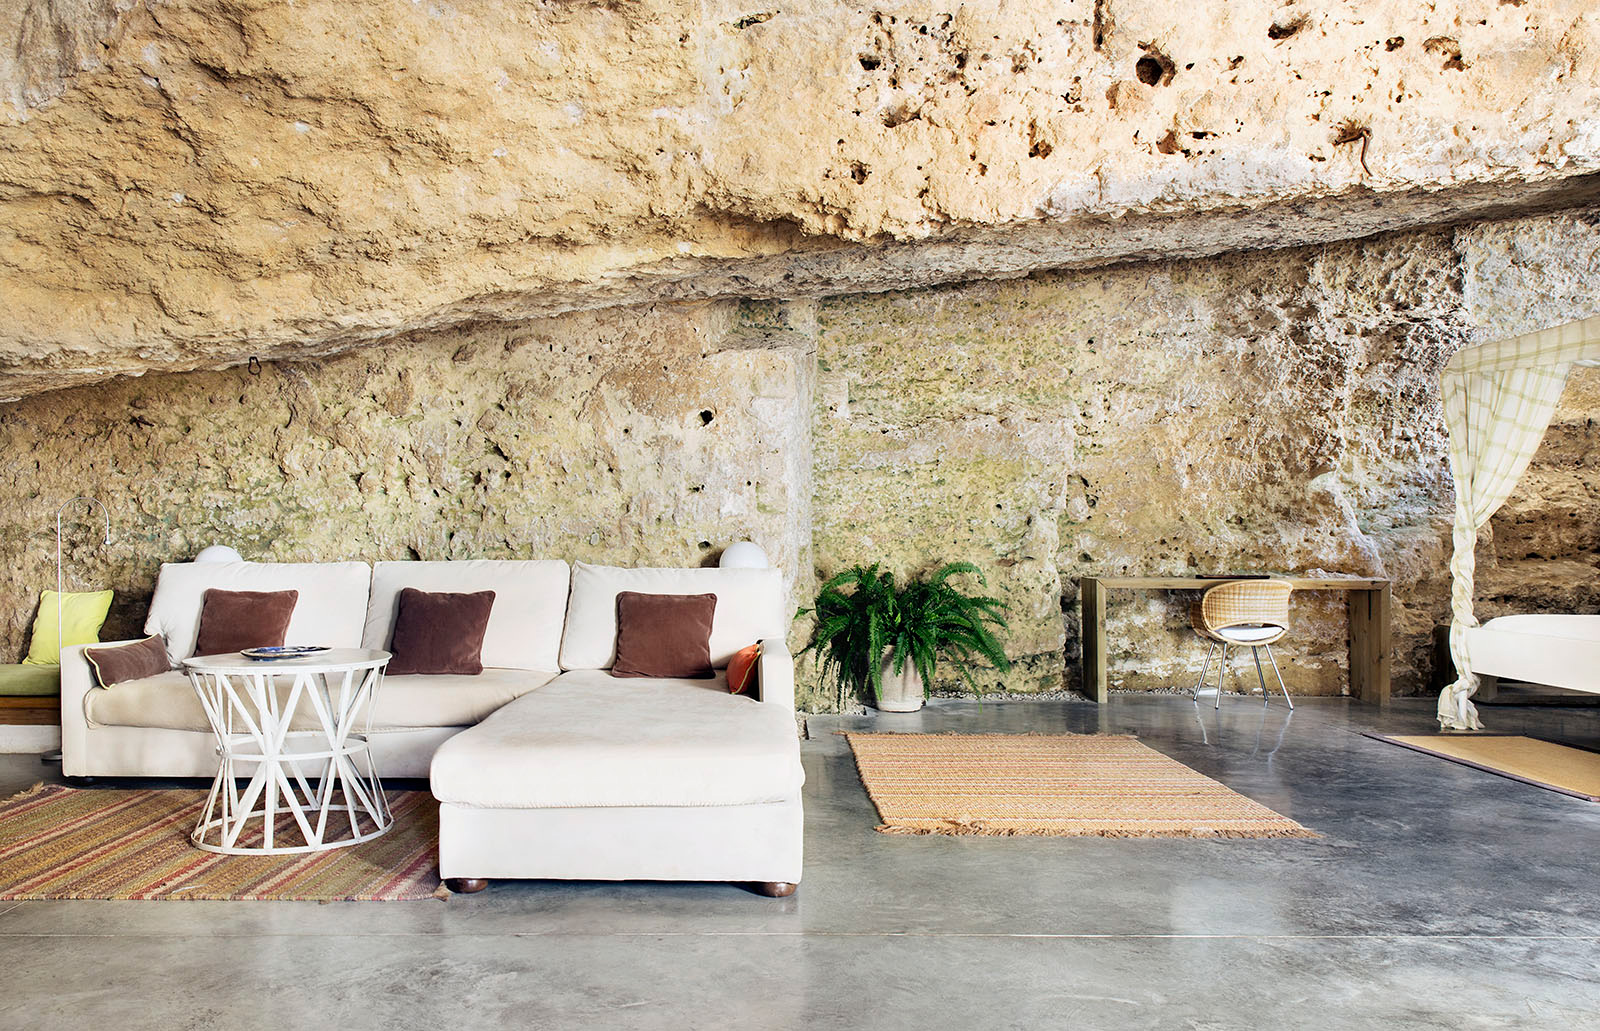 Casa Tierrra cave holiday home in Spain